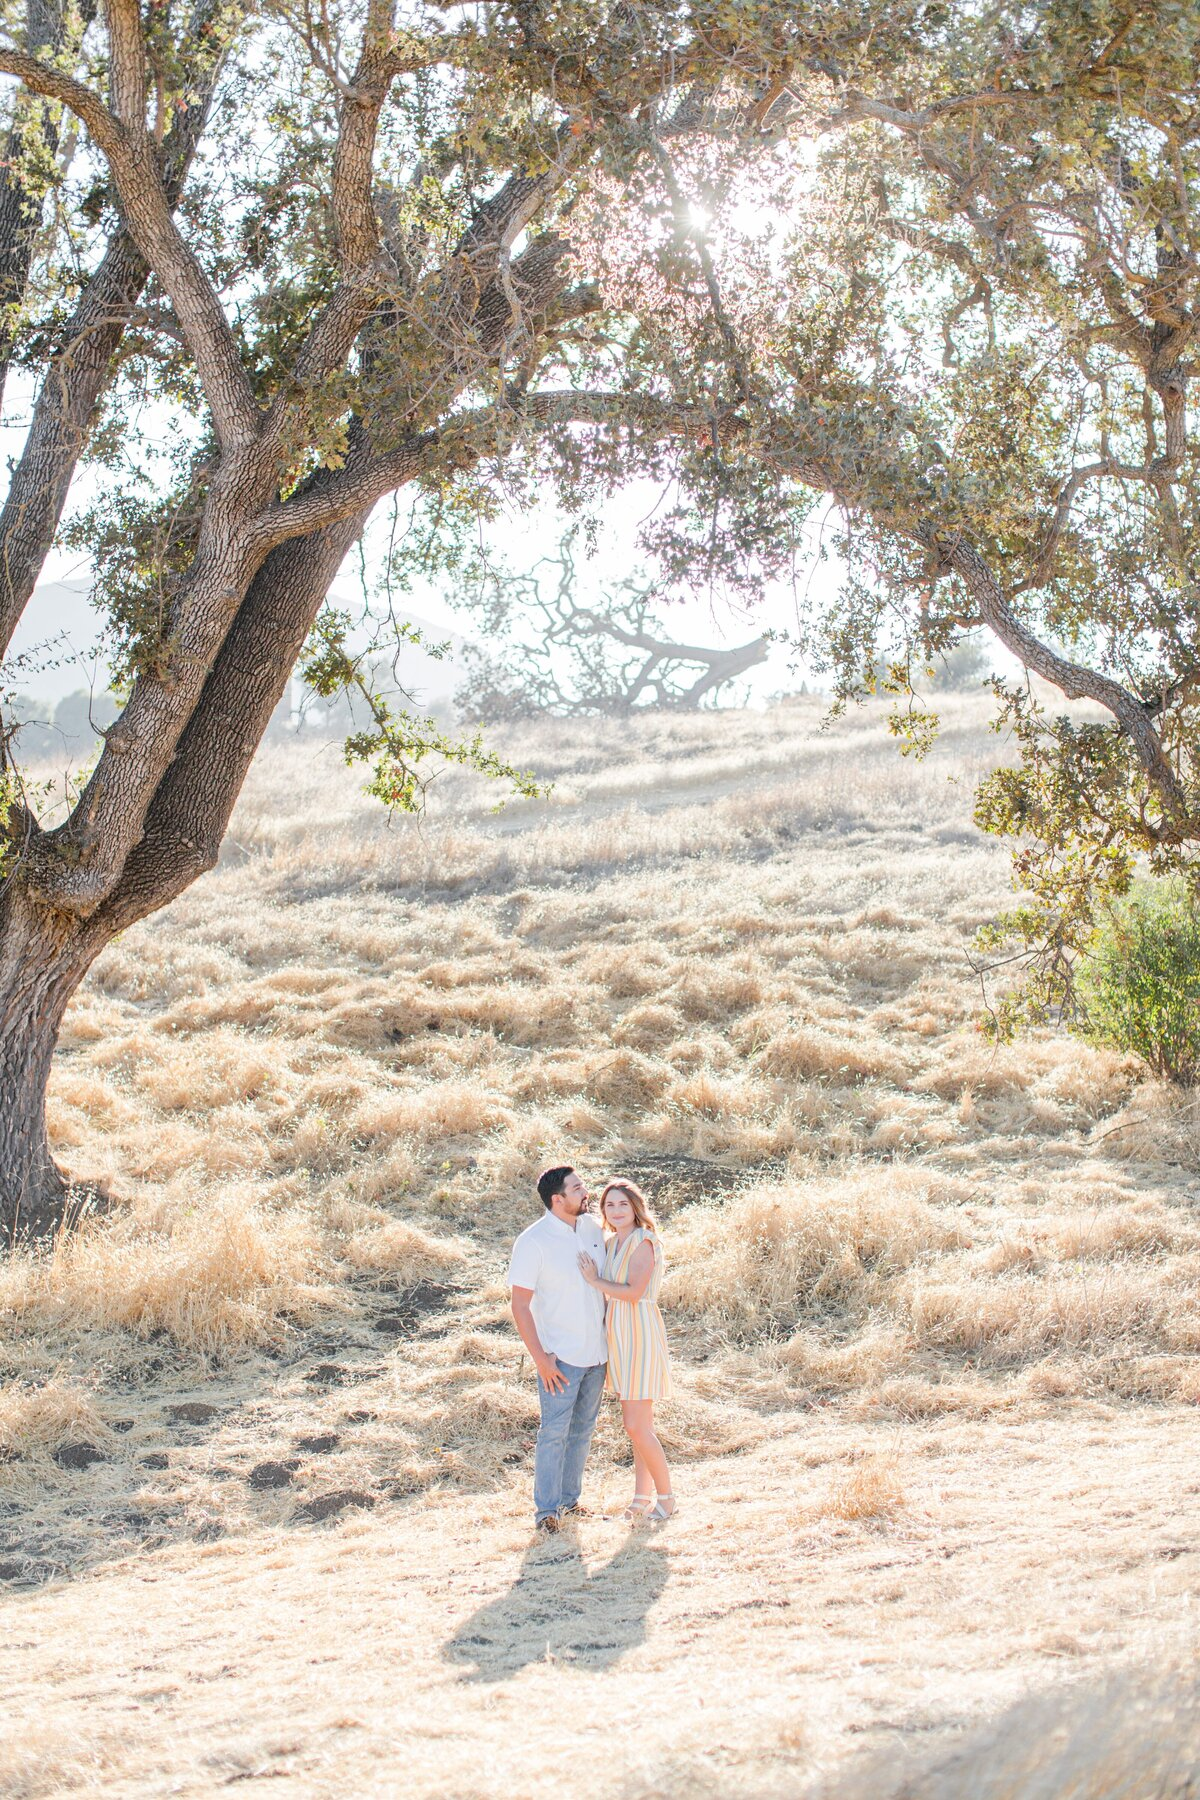 blog-Malibu-State-Creek-Park-Engagament-Shoot-boho-0016